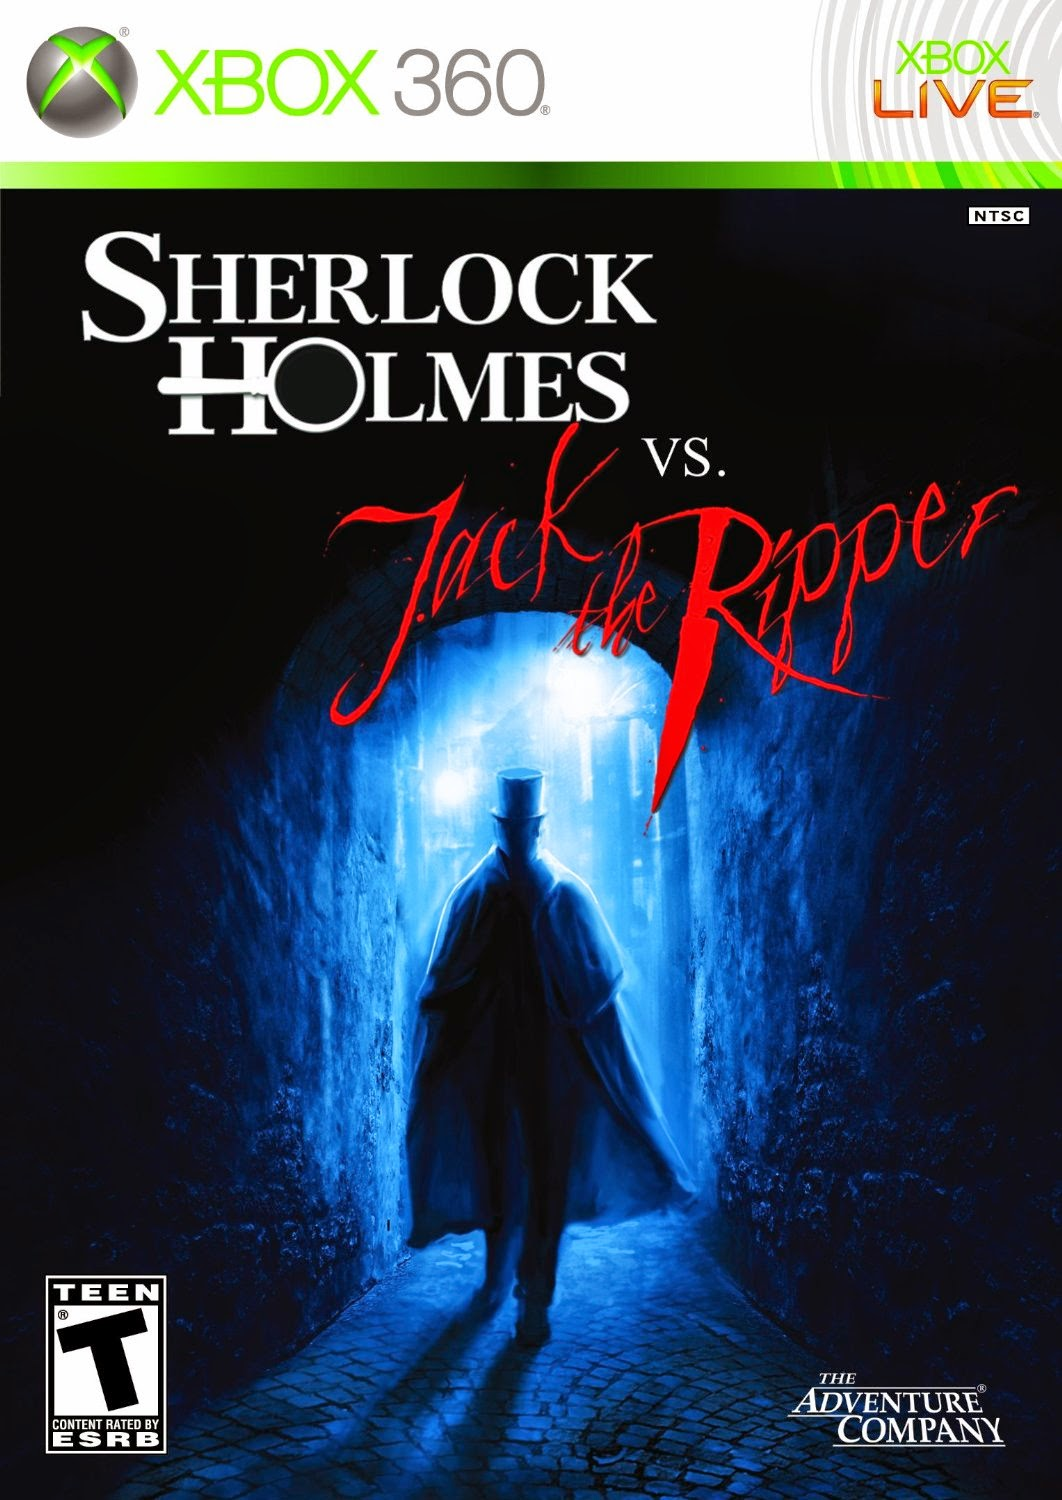 Video game - Sherlock Holmes vs. Jack the Ripper XBox360